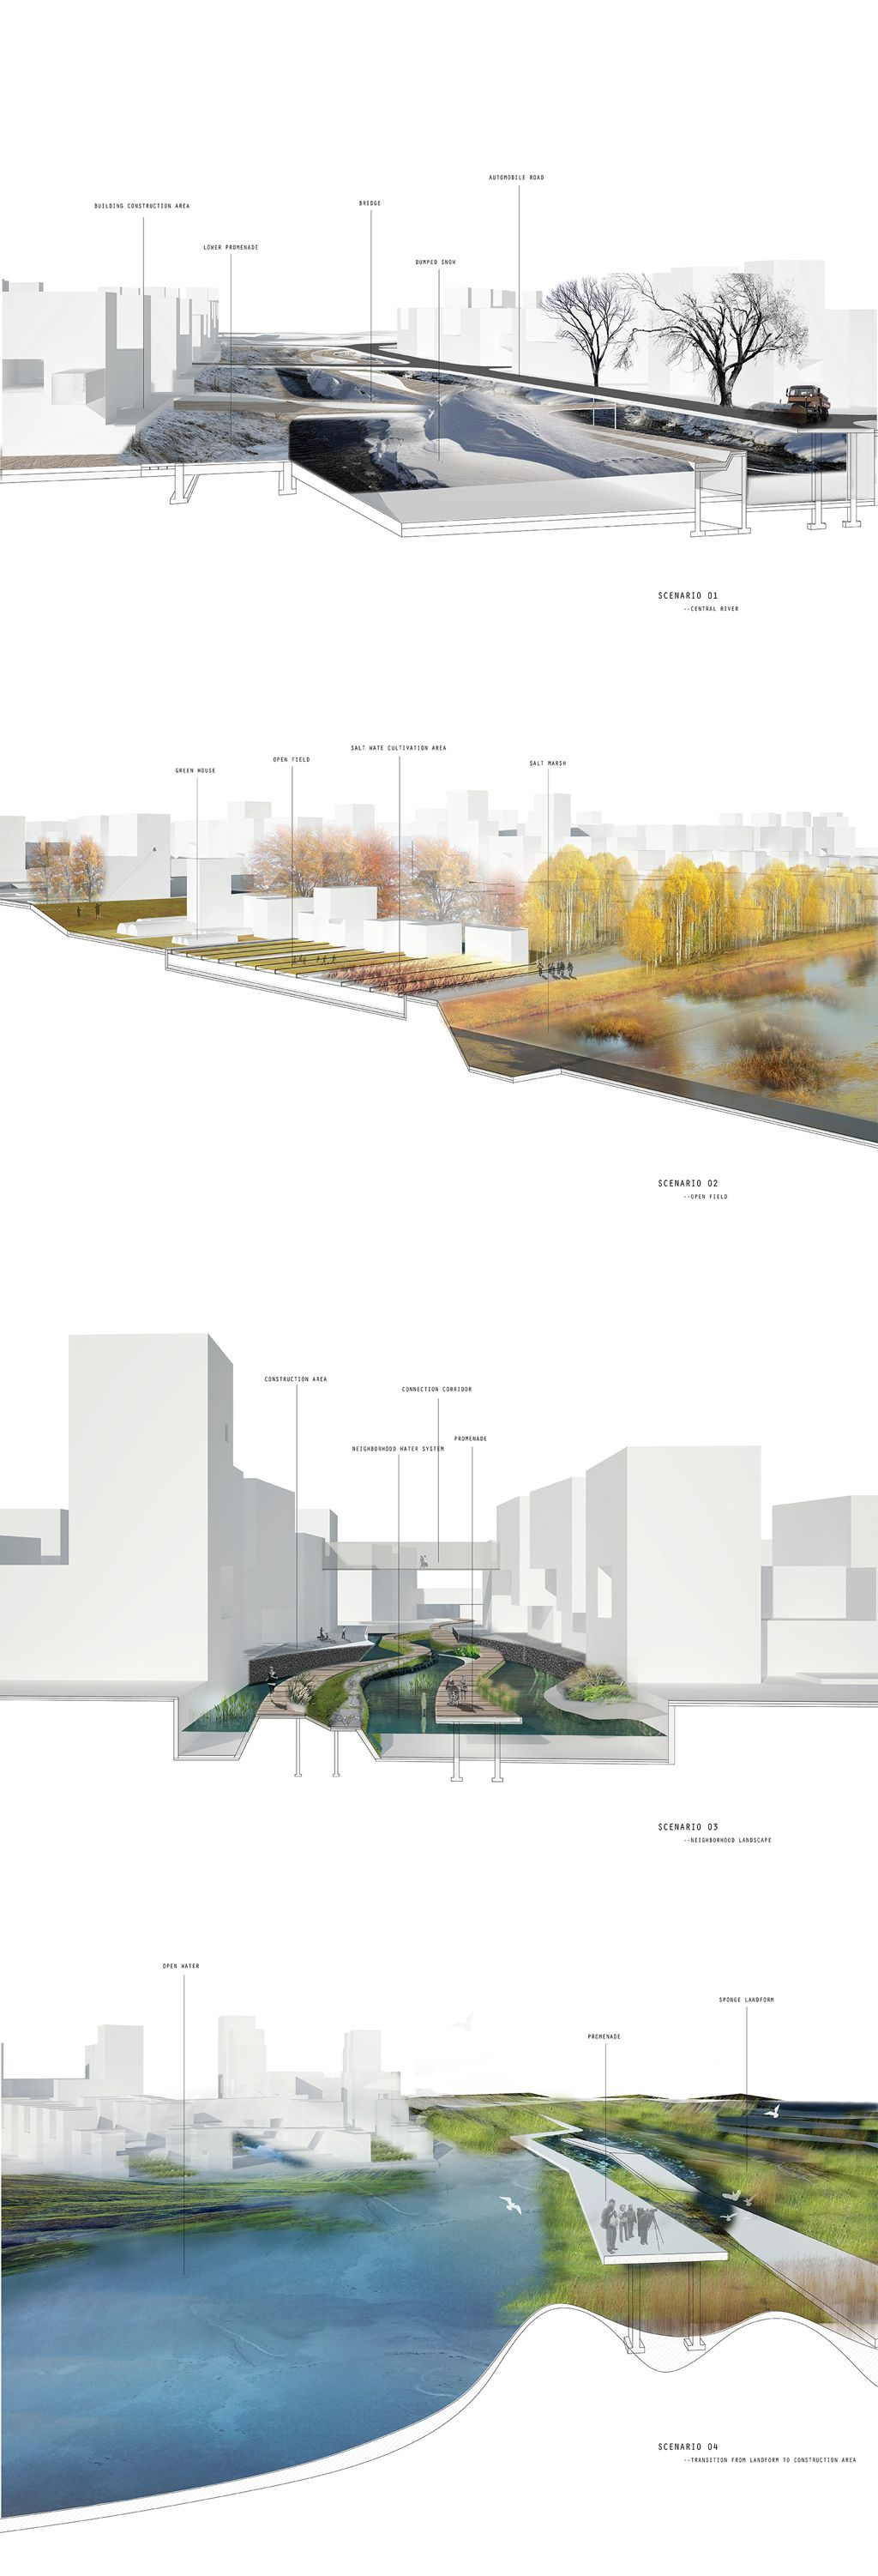 Chris Reed shares work from a Harvard GSD landscape architecture ...